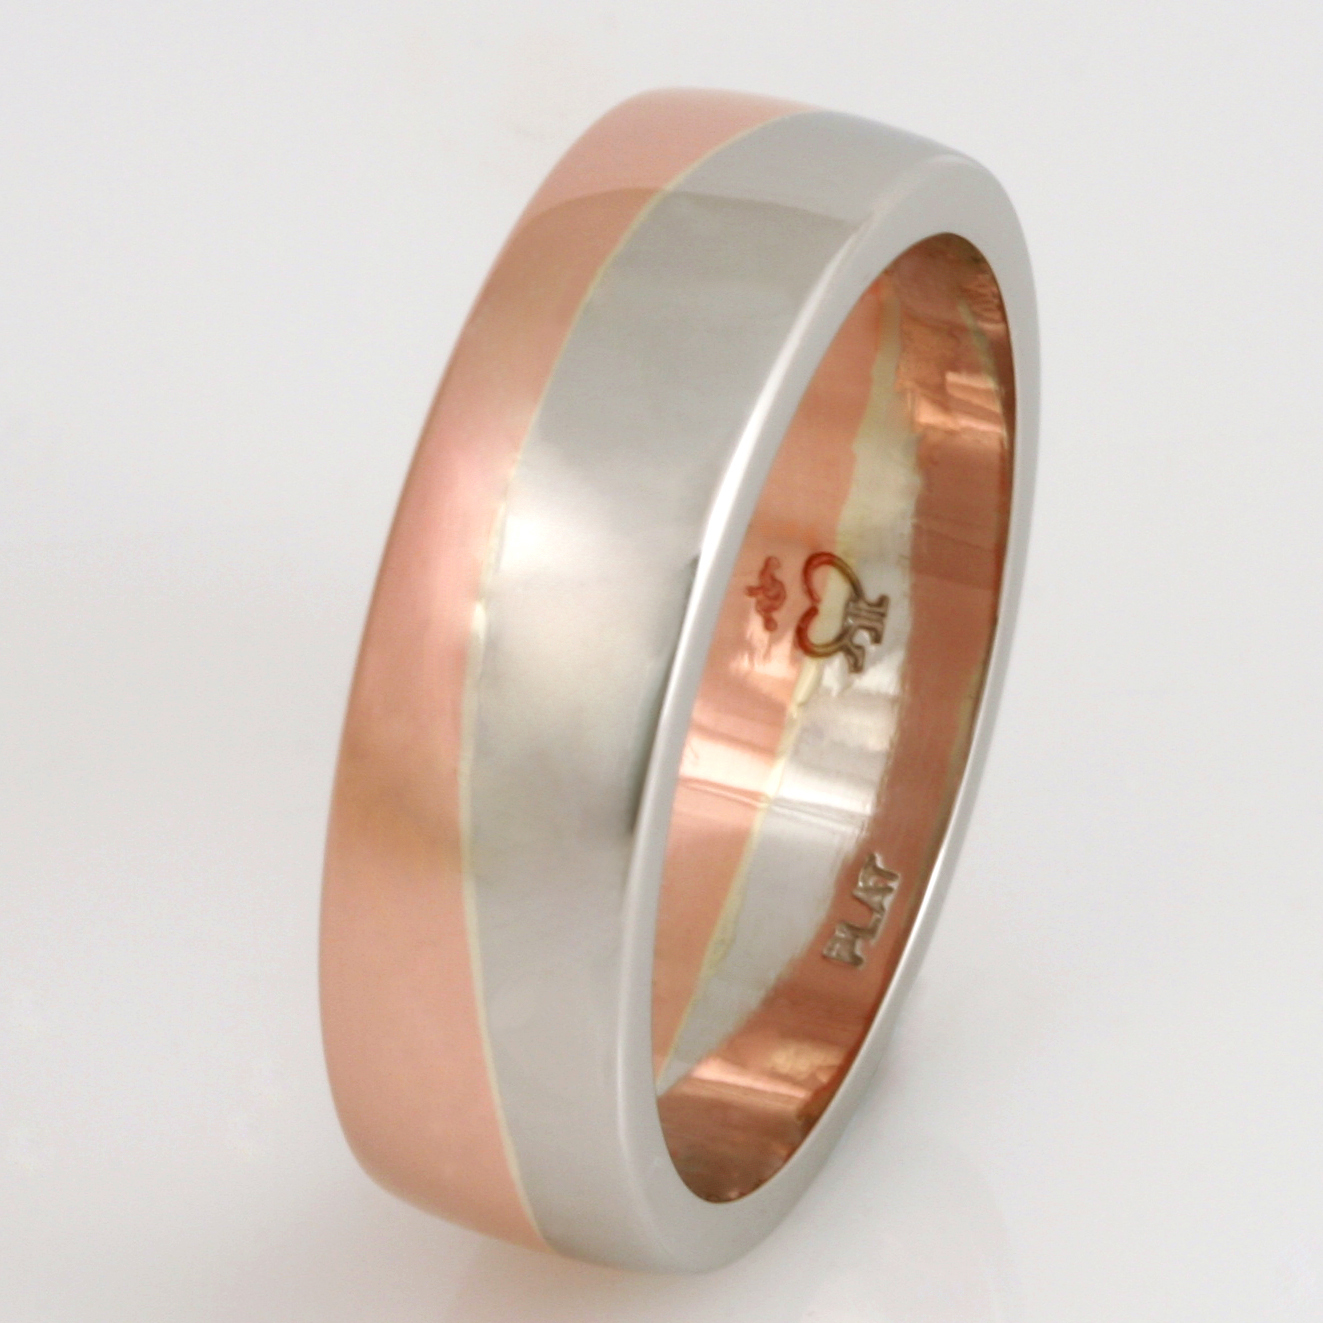 Handmade gents platinum and 18ct rose gold wedding ring